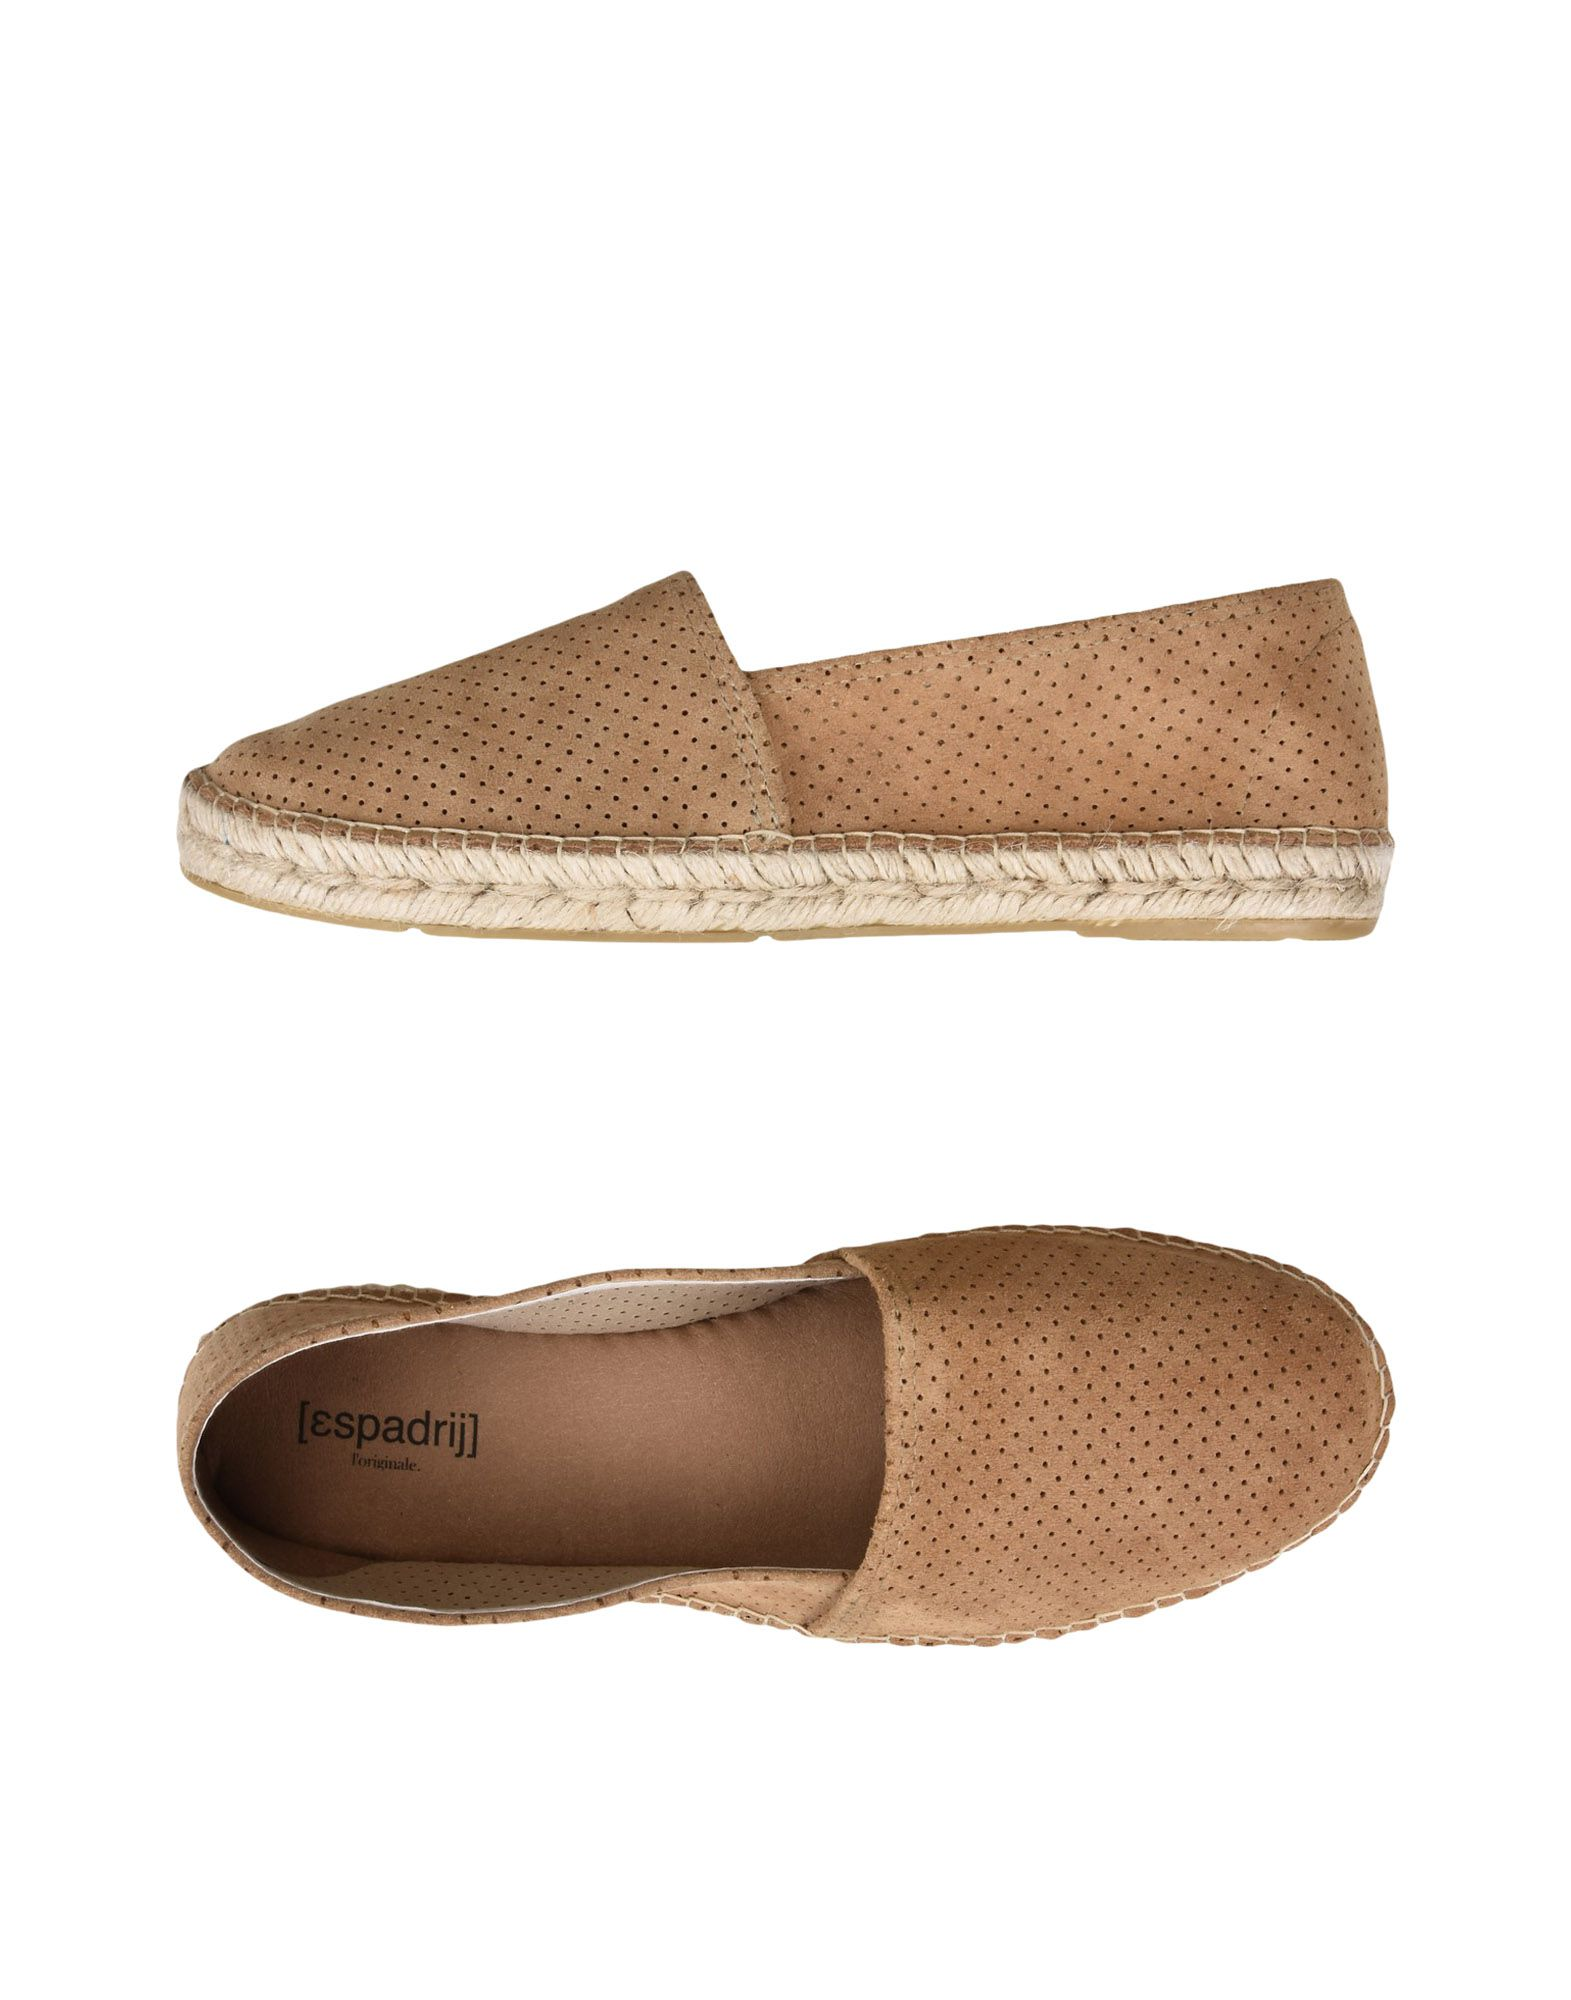 Espadrillas [Espadrij] Classic Velour Perfore Men - Uomo - 11485007BP